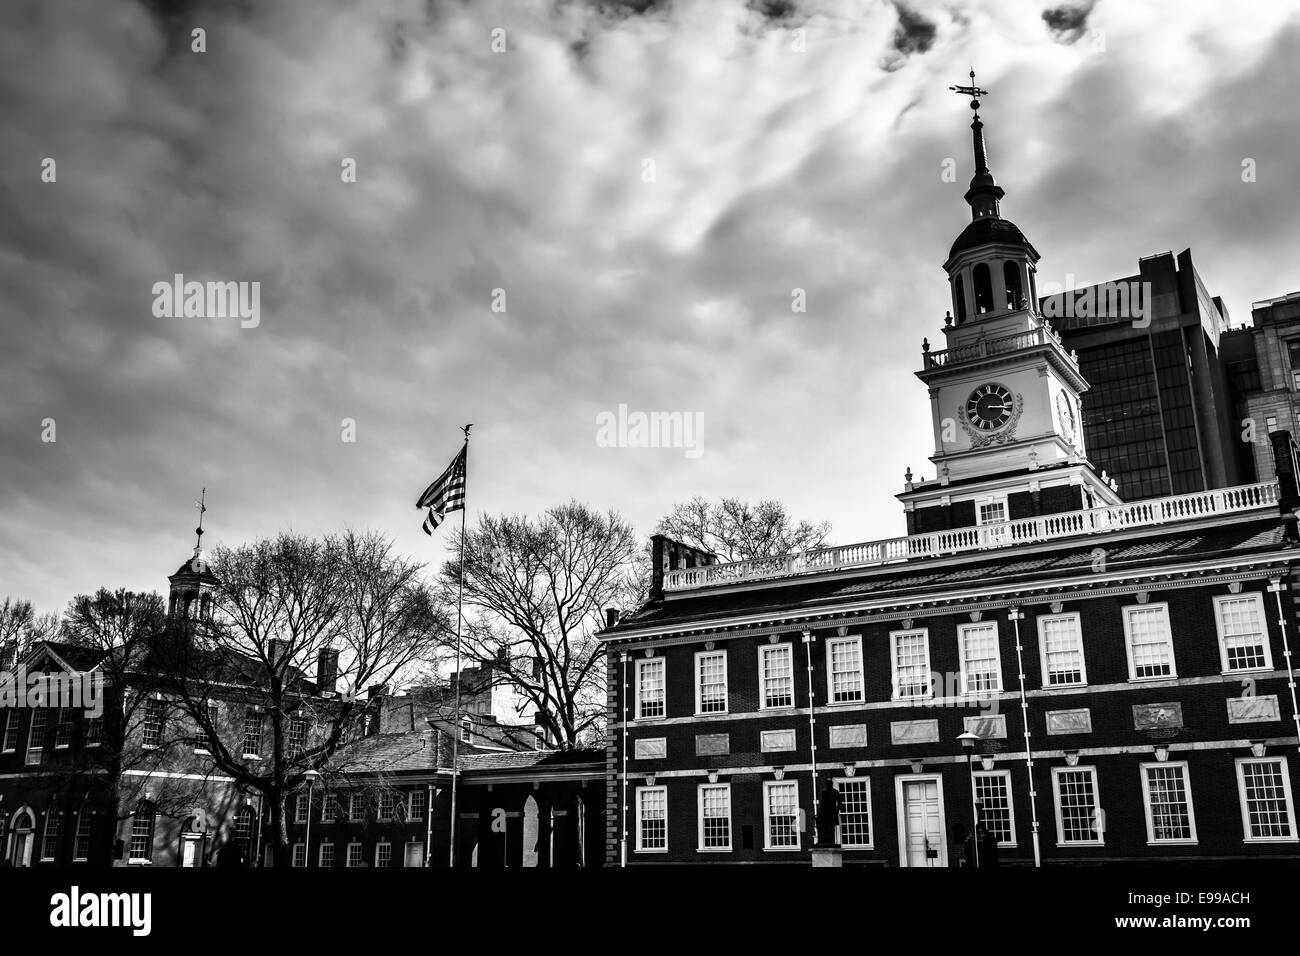 Independence Hall, in Philadelphia, Pennsylvania. - Stock Image